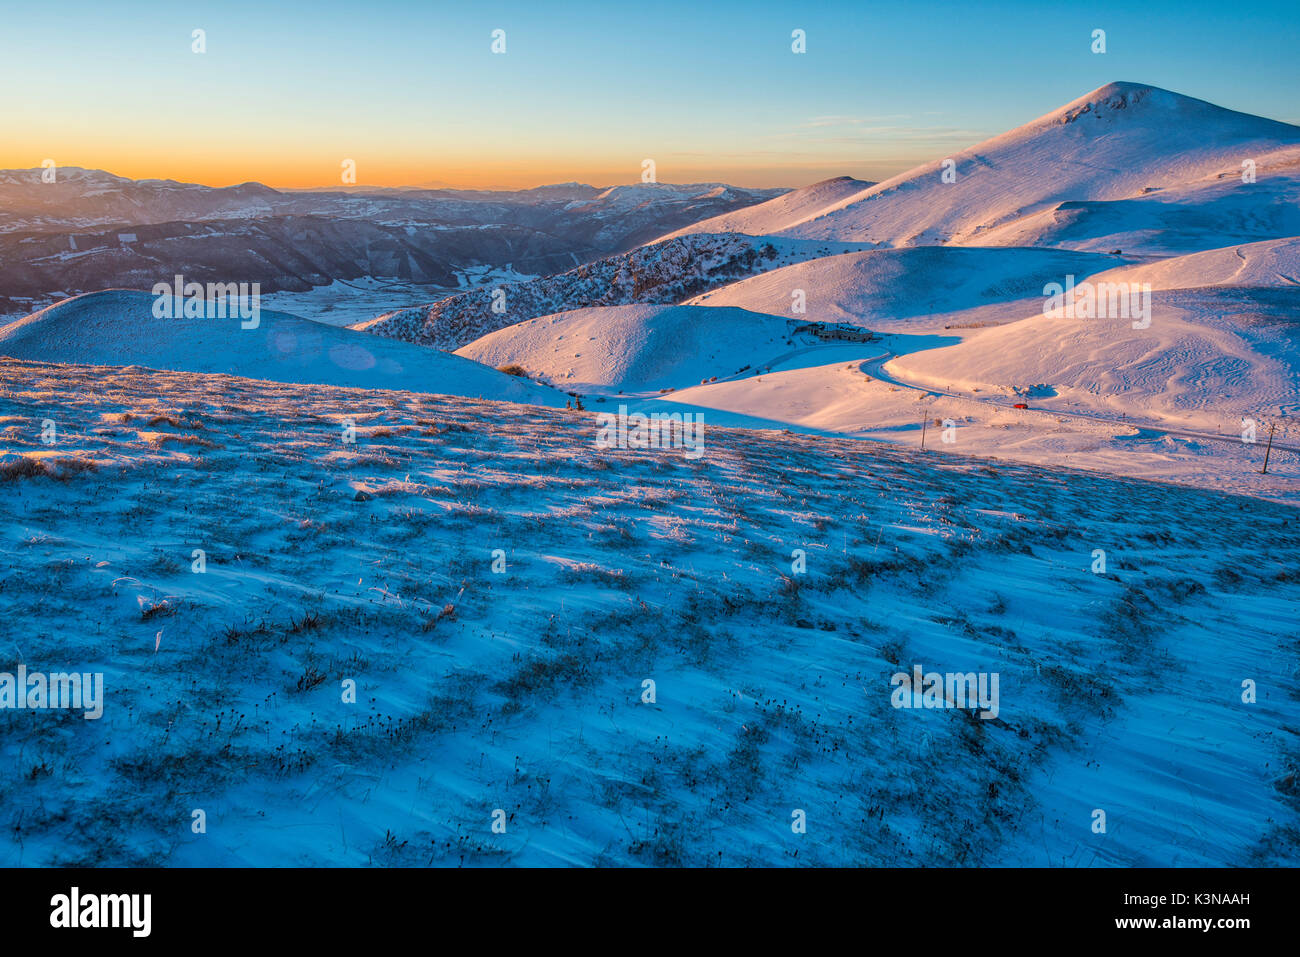 Mountains at sunset, Sibillini mountains NP, Umbria, Italy - Stock Image